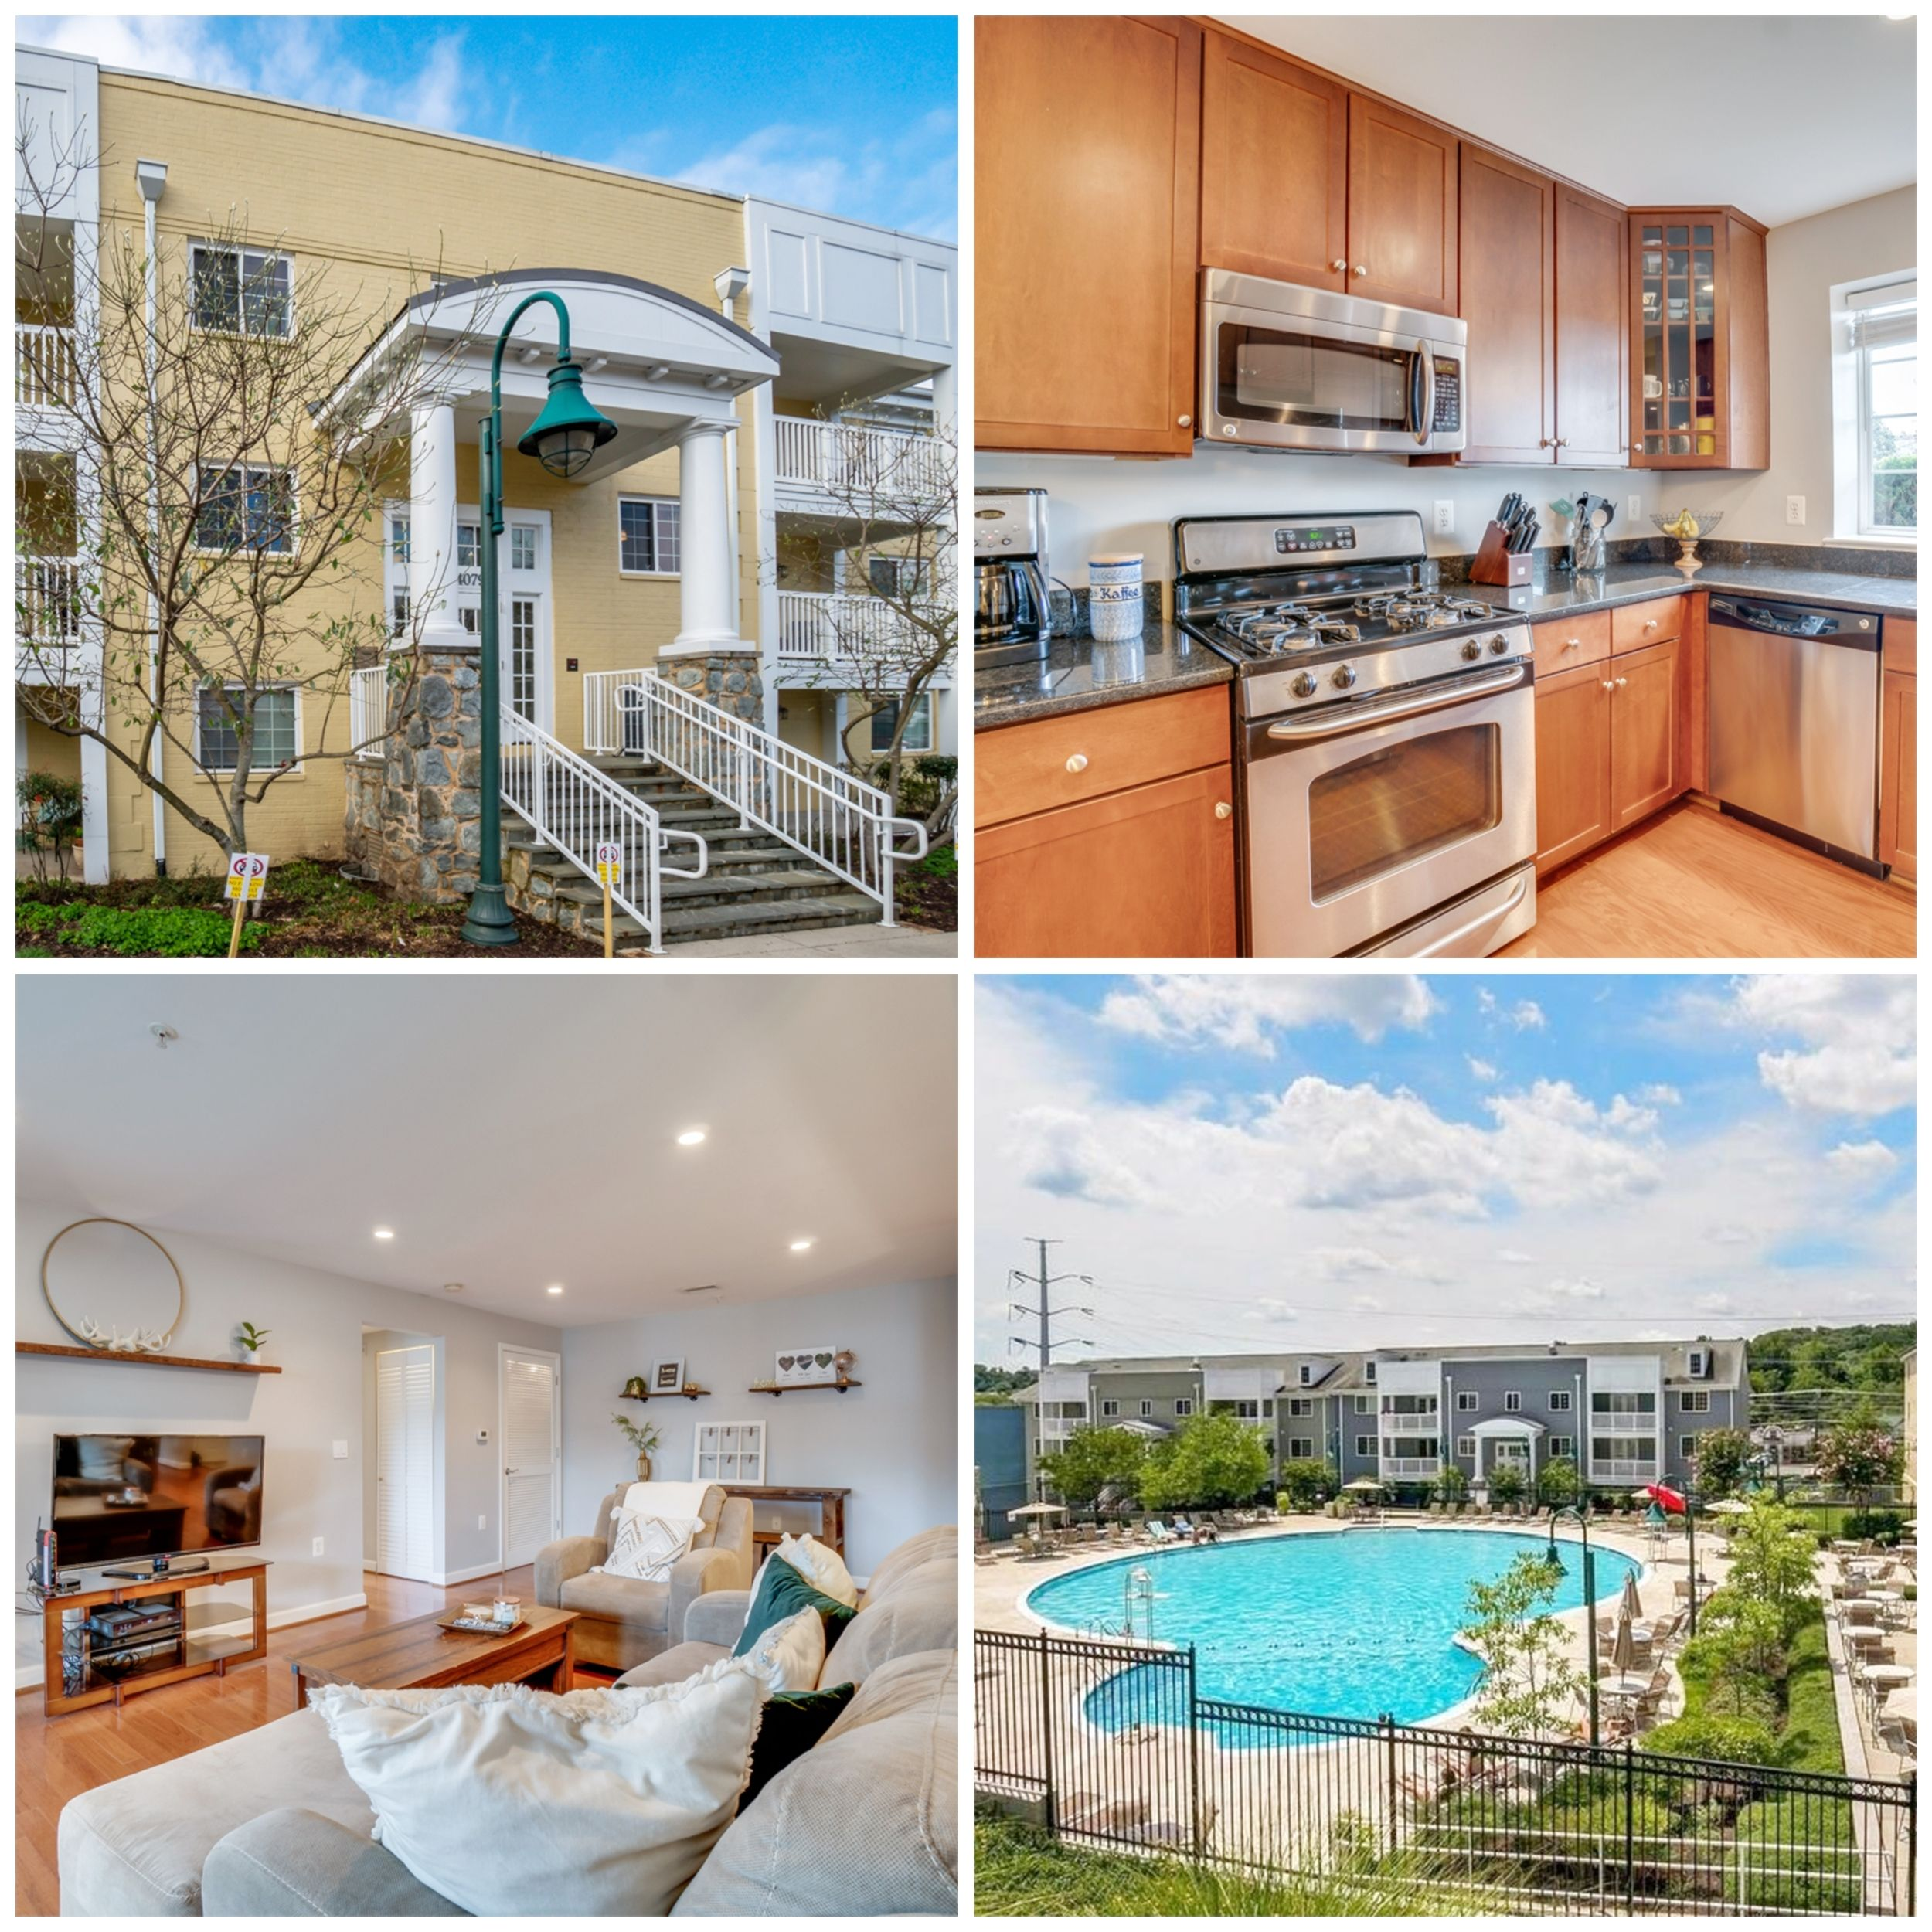 Cazanewlisting Openhouse 3 29 Sun 2 4pm Newly Renovated 1 Bedroom 1 Bathroom Condo In Arlington For More Information Please Ca In 2020 Home Buying House Open House